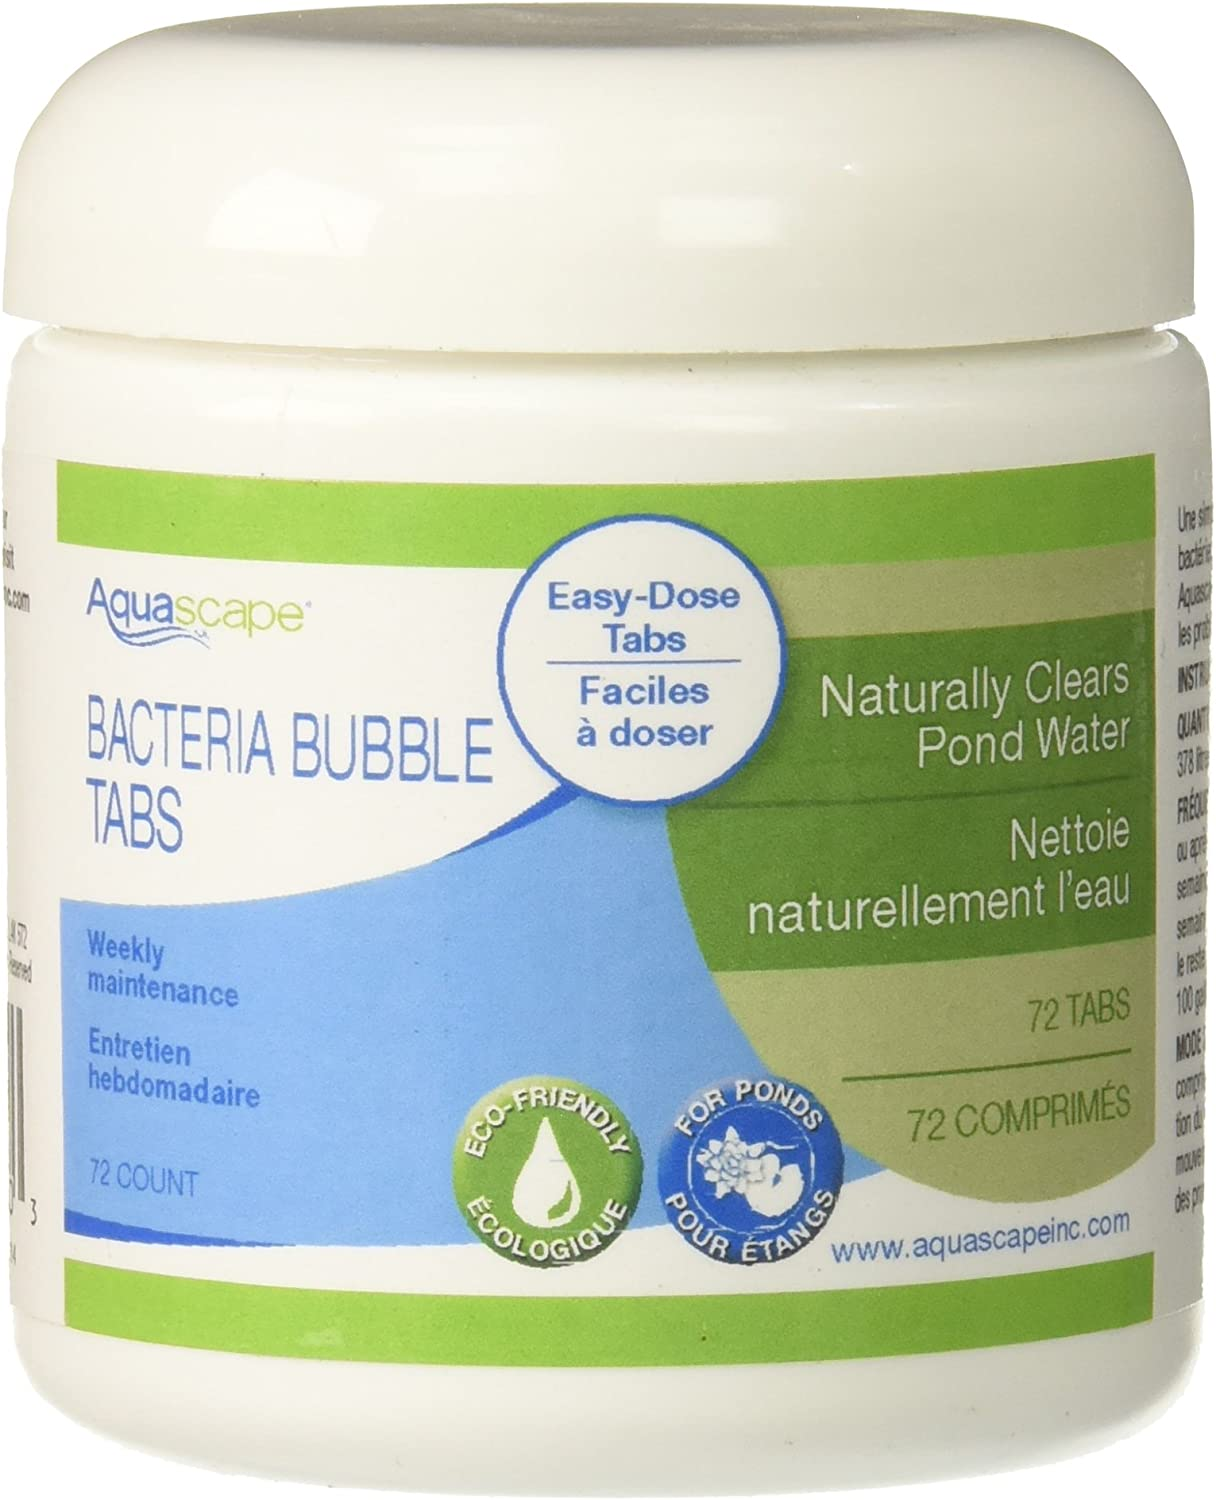 Aquascape 98930 Beneficial Bacteria Bubble Tabs for Pond and Water Features, 72Count